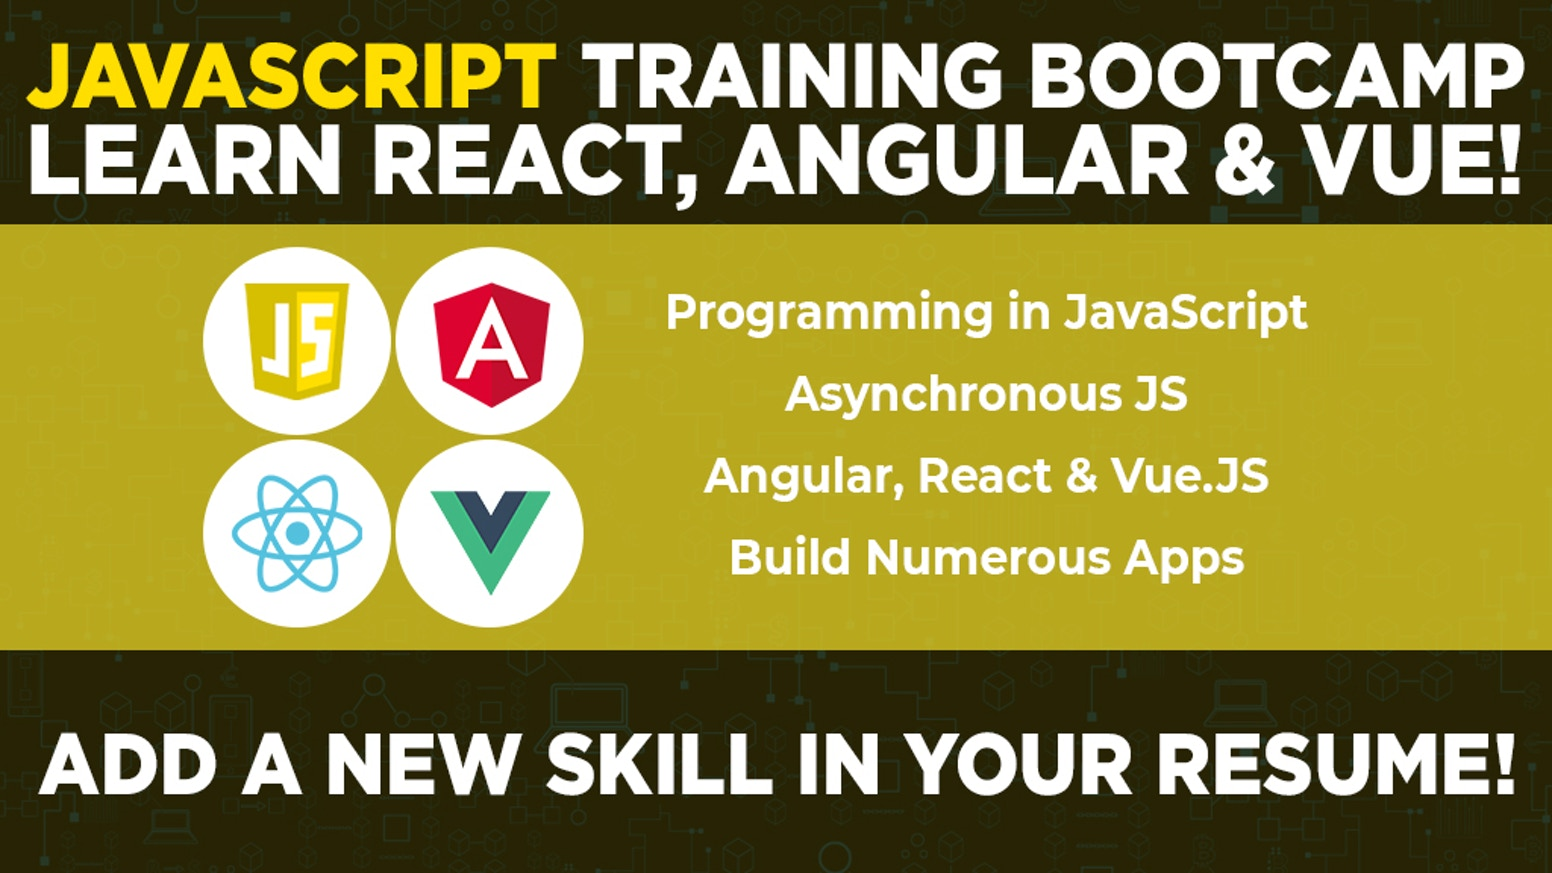 JavaScript Bootcamp- Build Apps With Top 3 JS Frameworks!